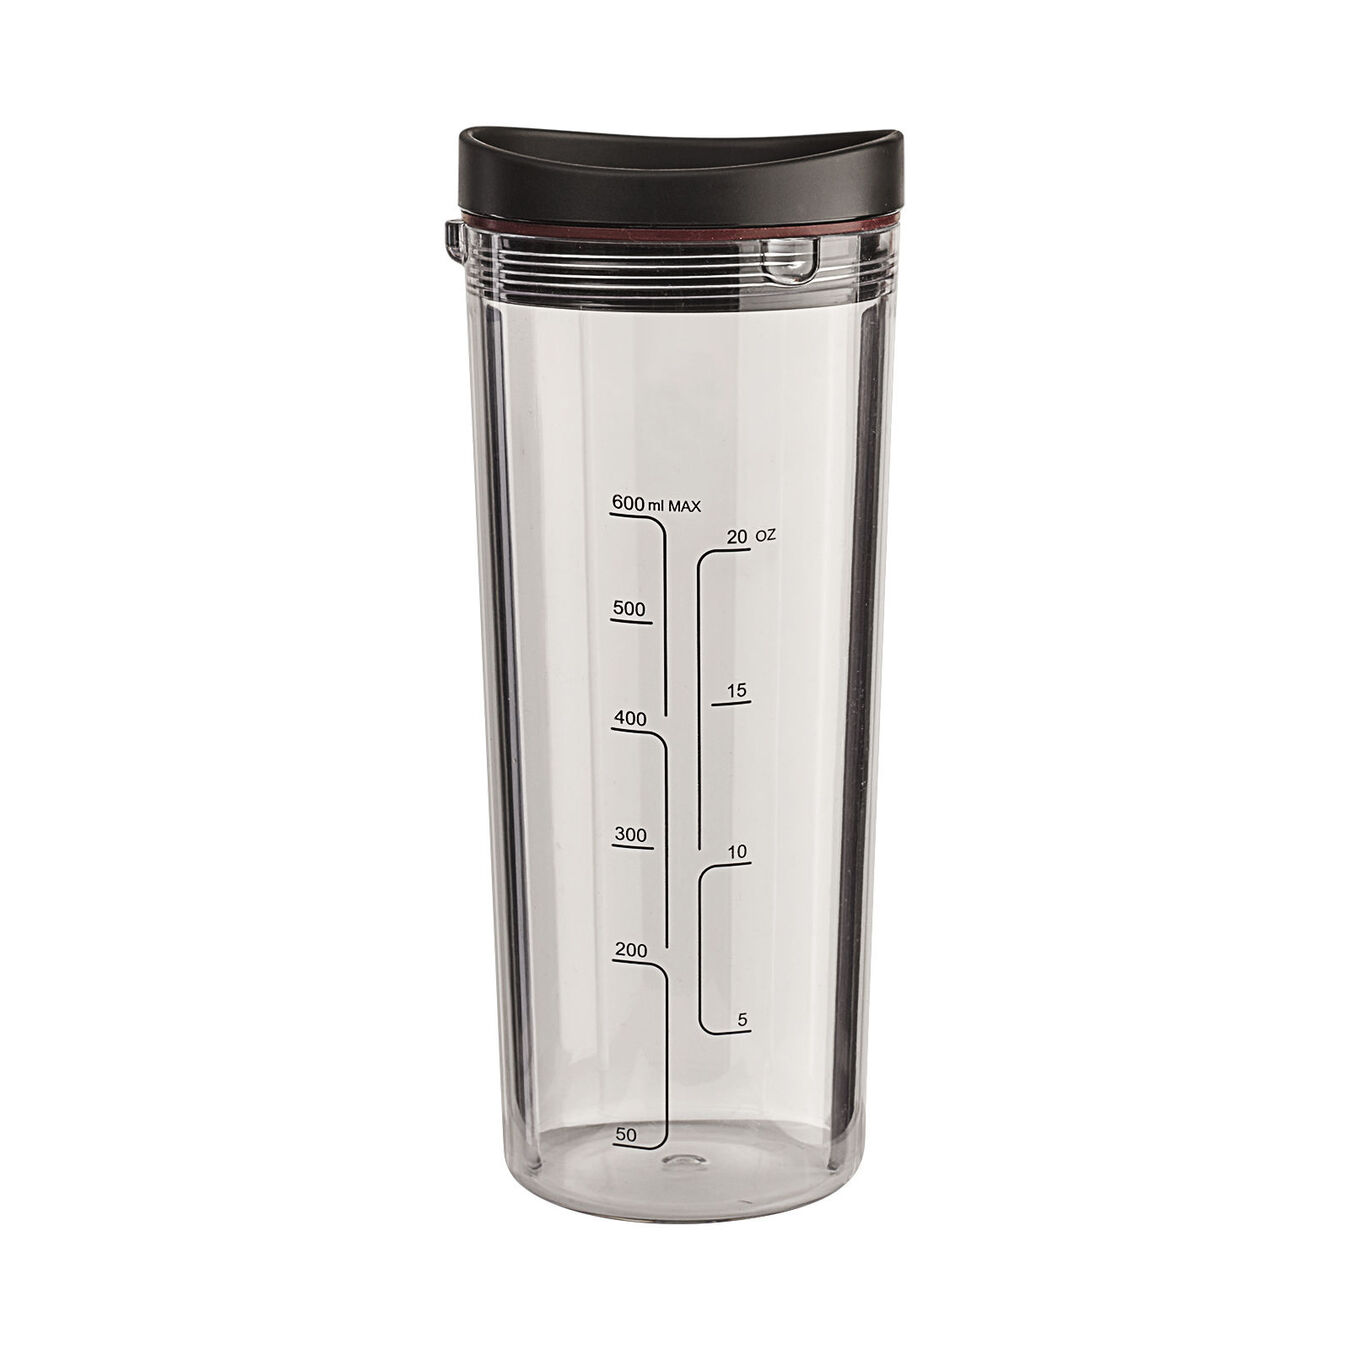 Countertop Blender - Cherry Red,,large 6